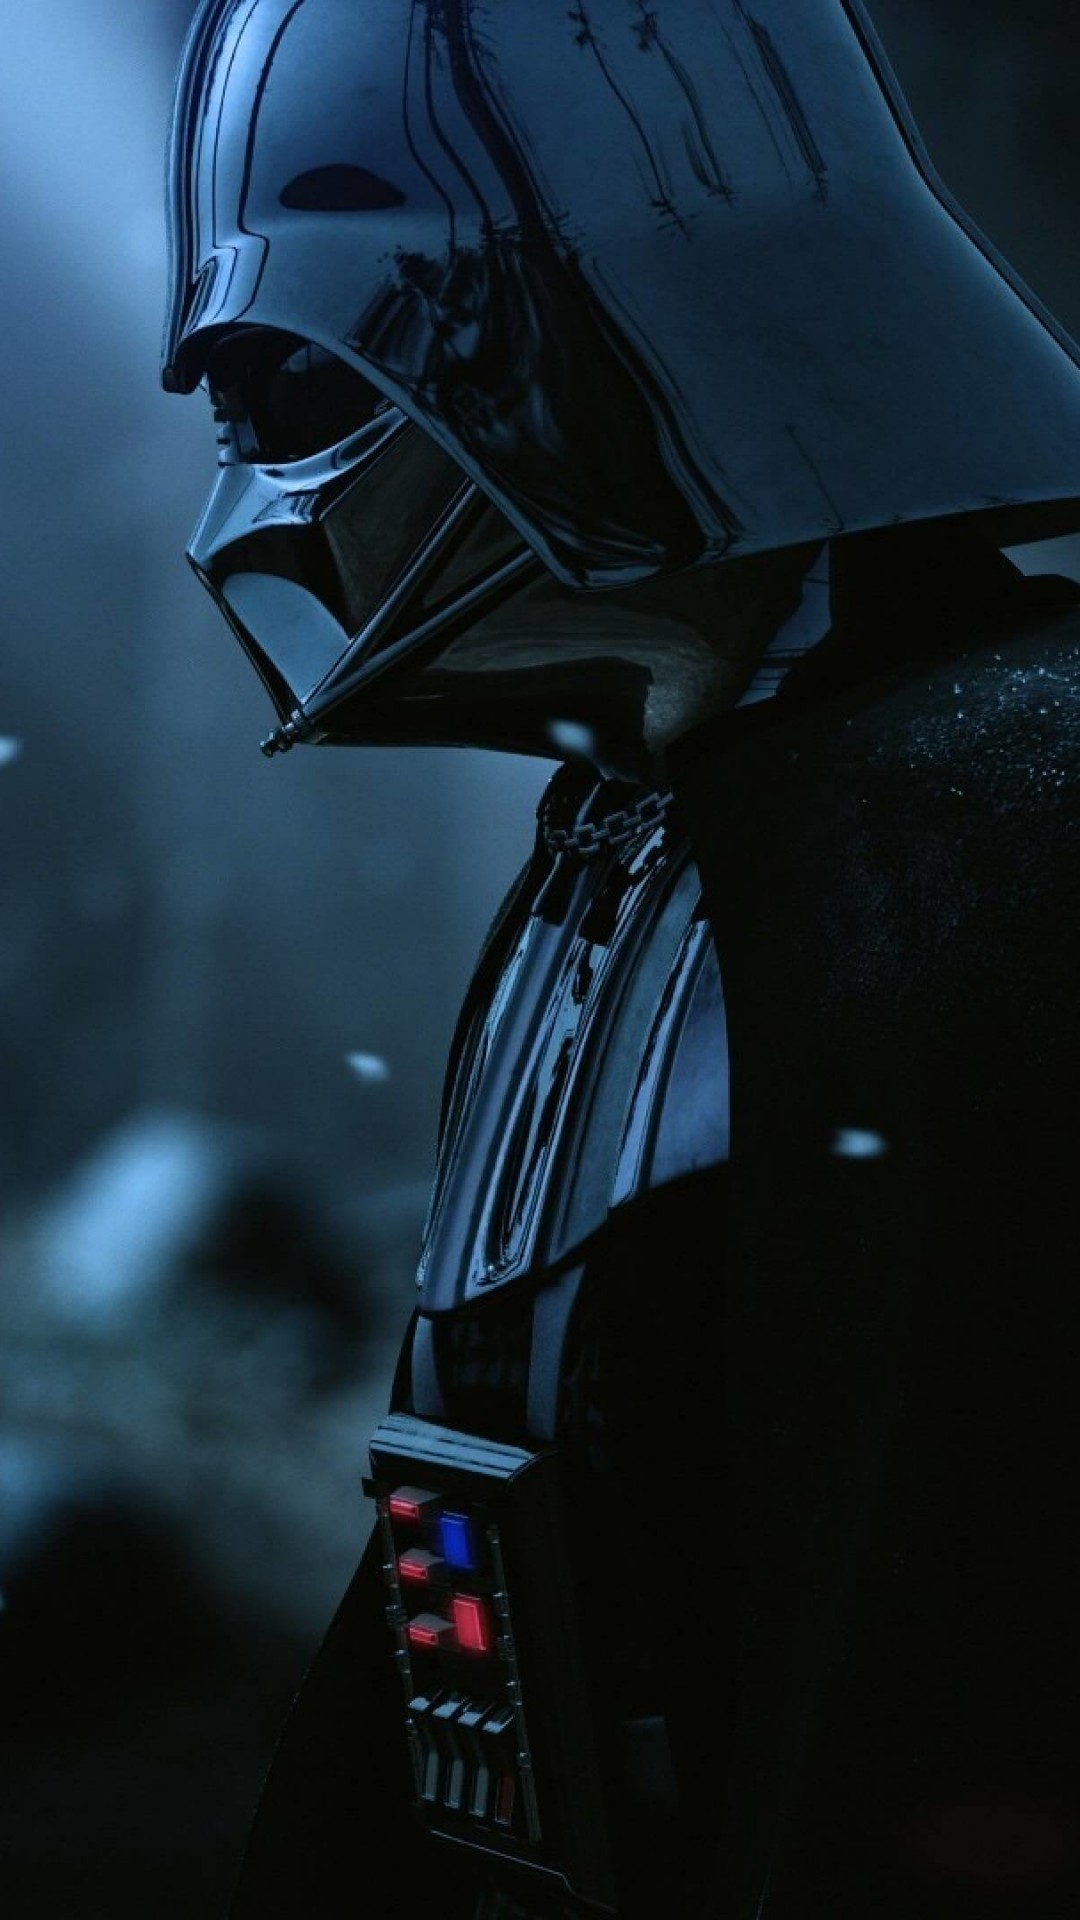 Darth Vader - The Force Unleashed 2 Wallpaper for Google Nexus 5X